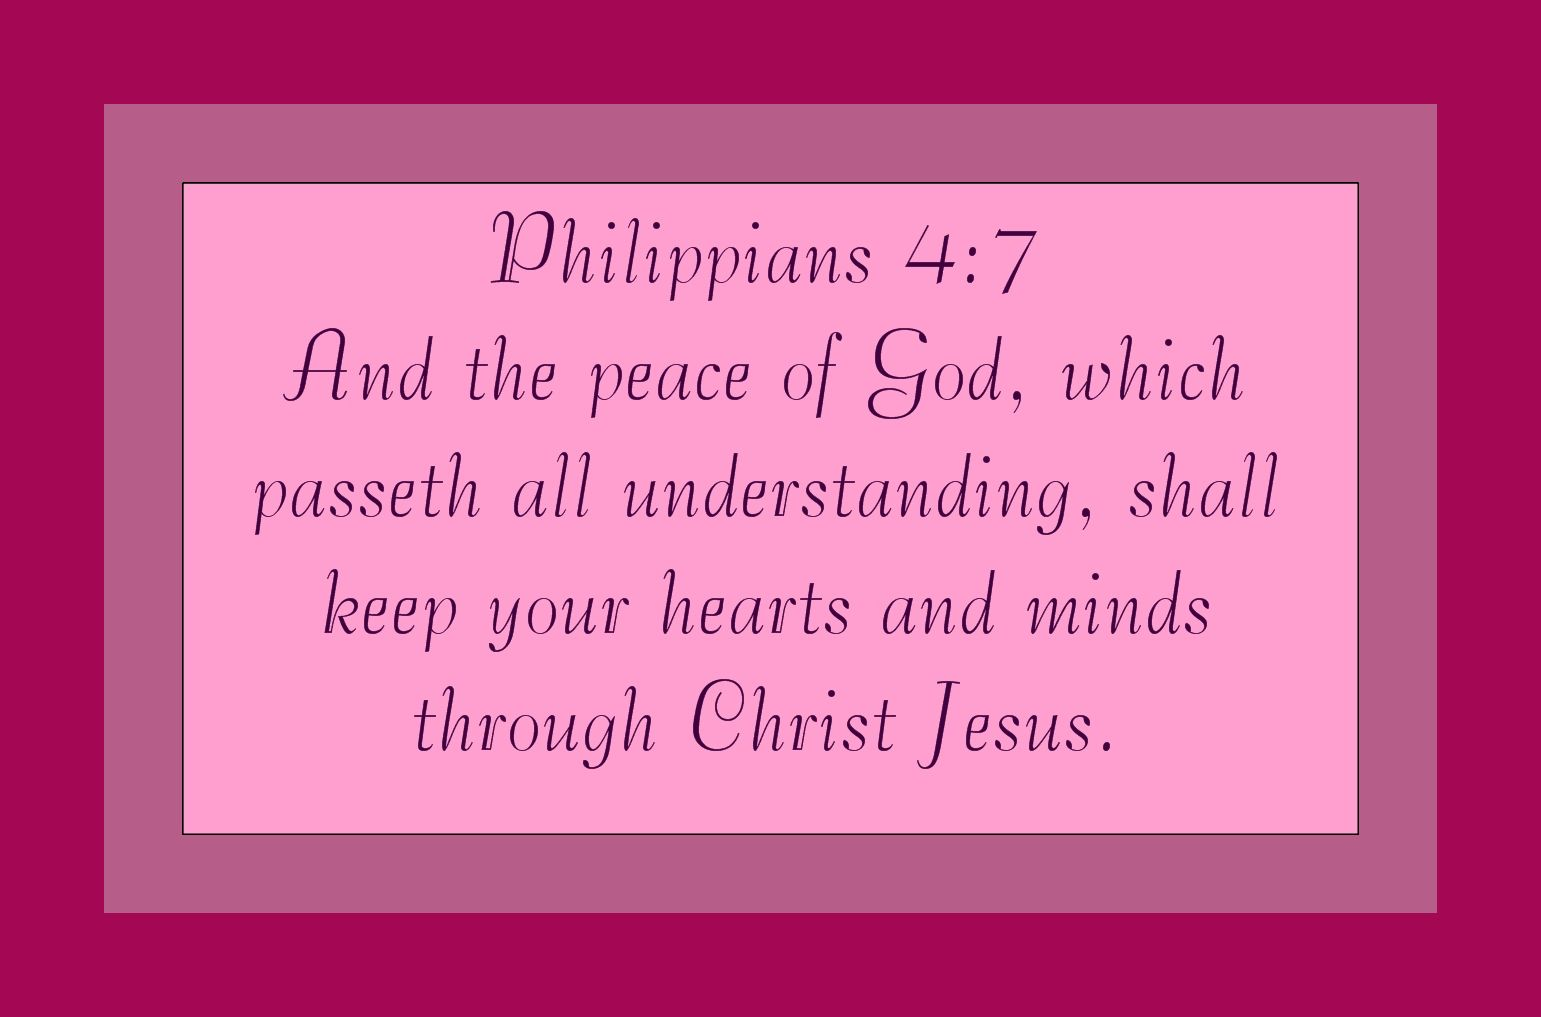 Christian Images In My Treasure Box: Philippians 4:7 - Peace Of God